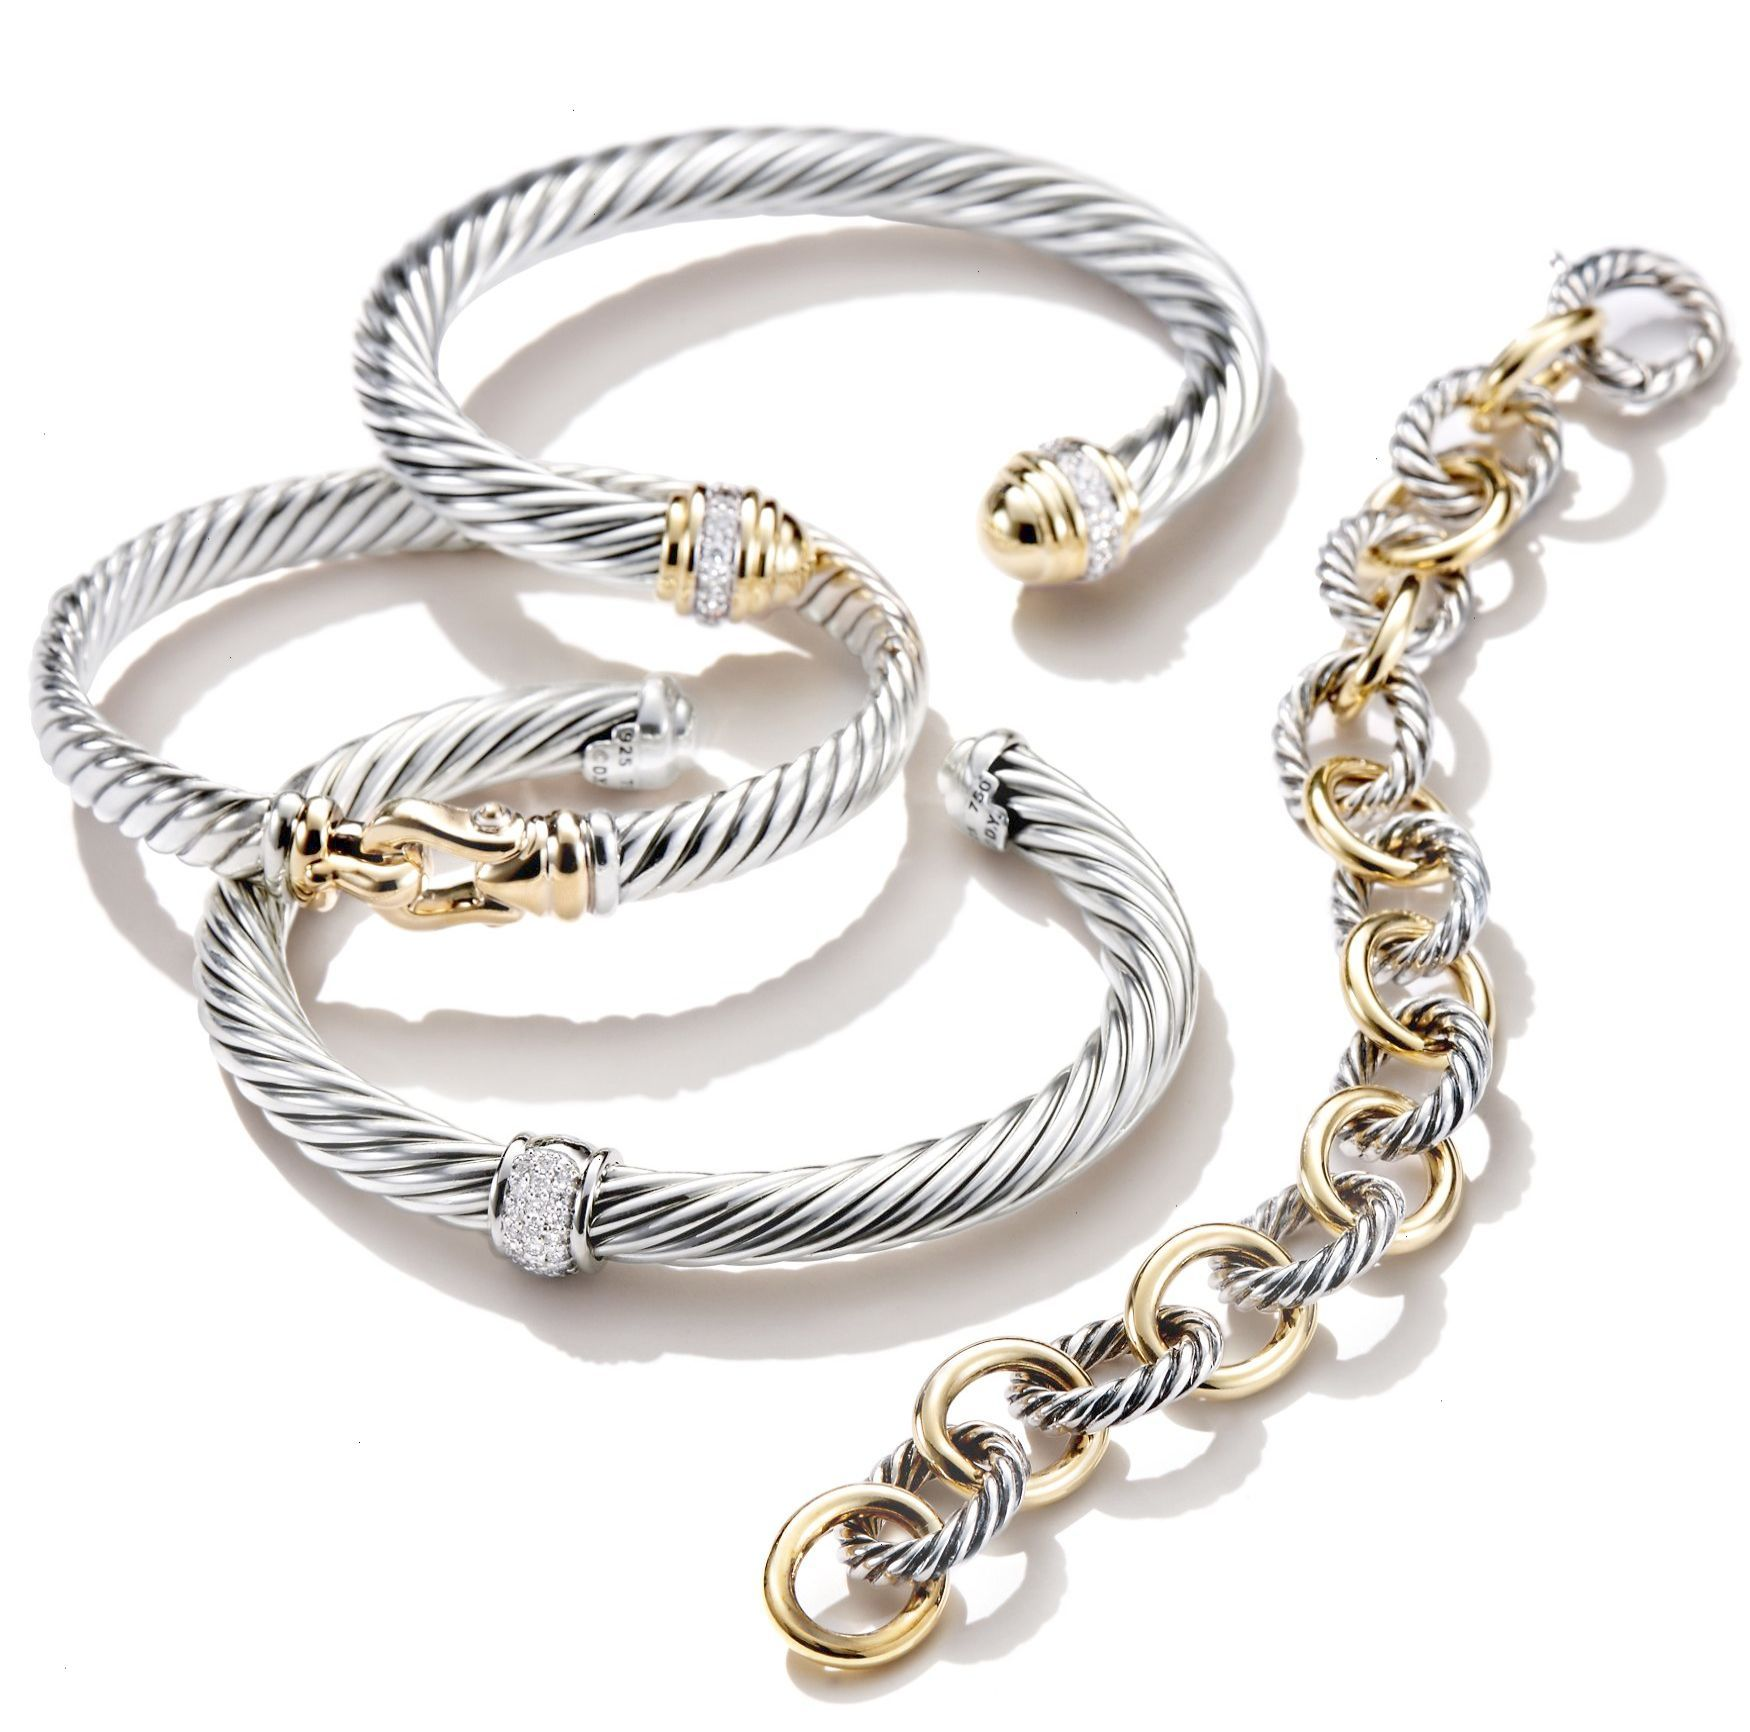 David yurman bracelets are designed to layer and stack together